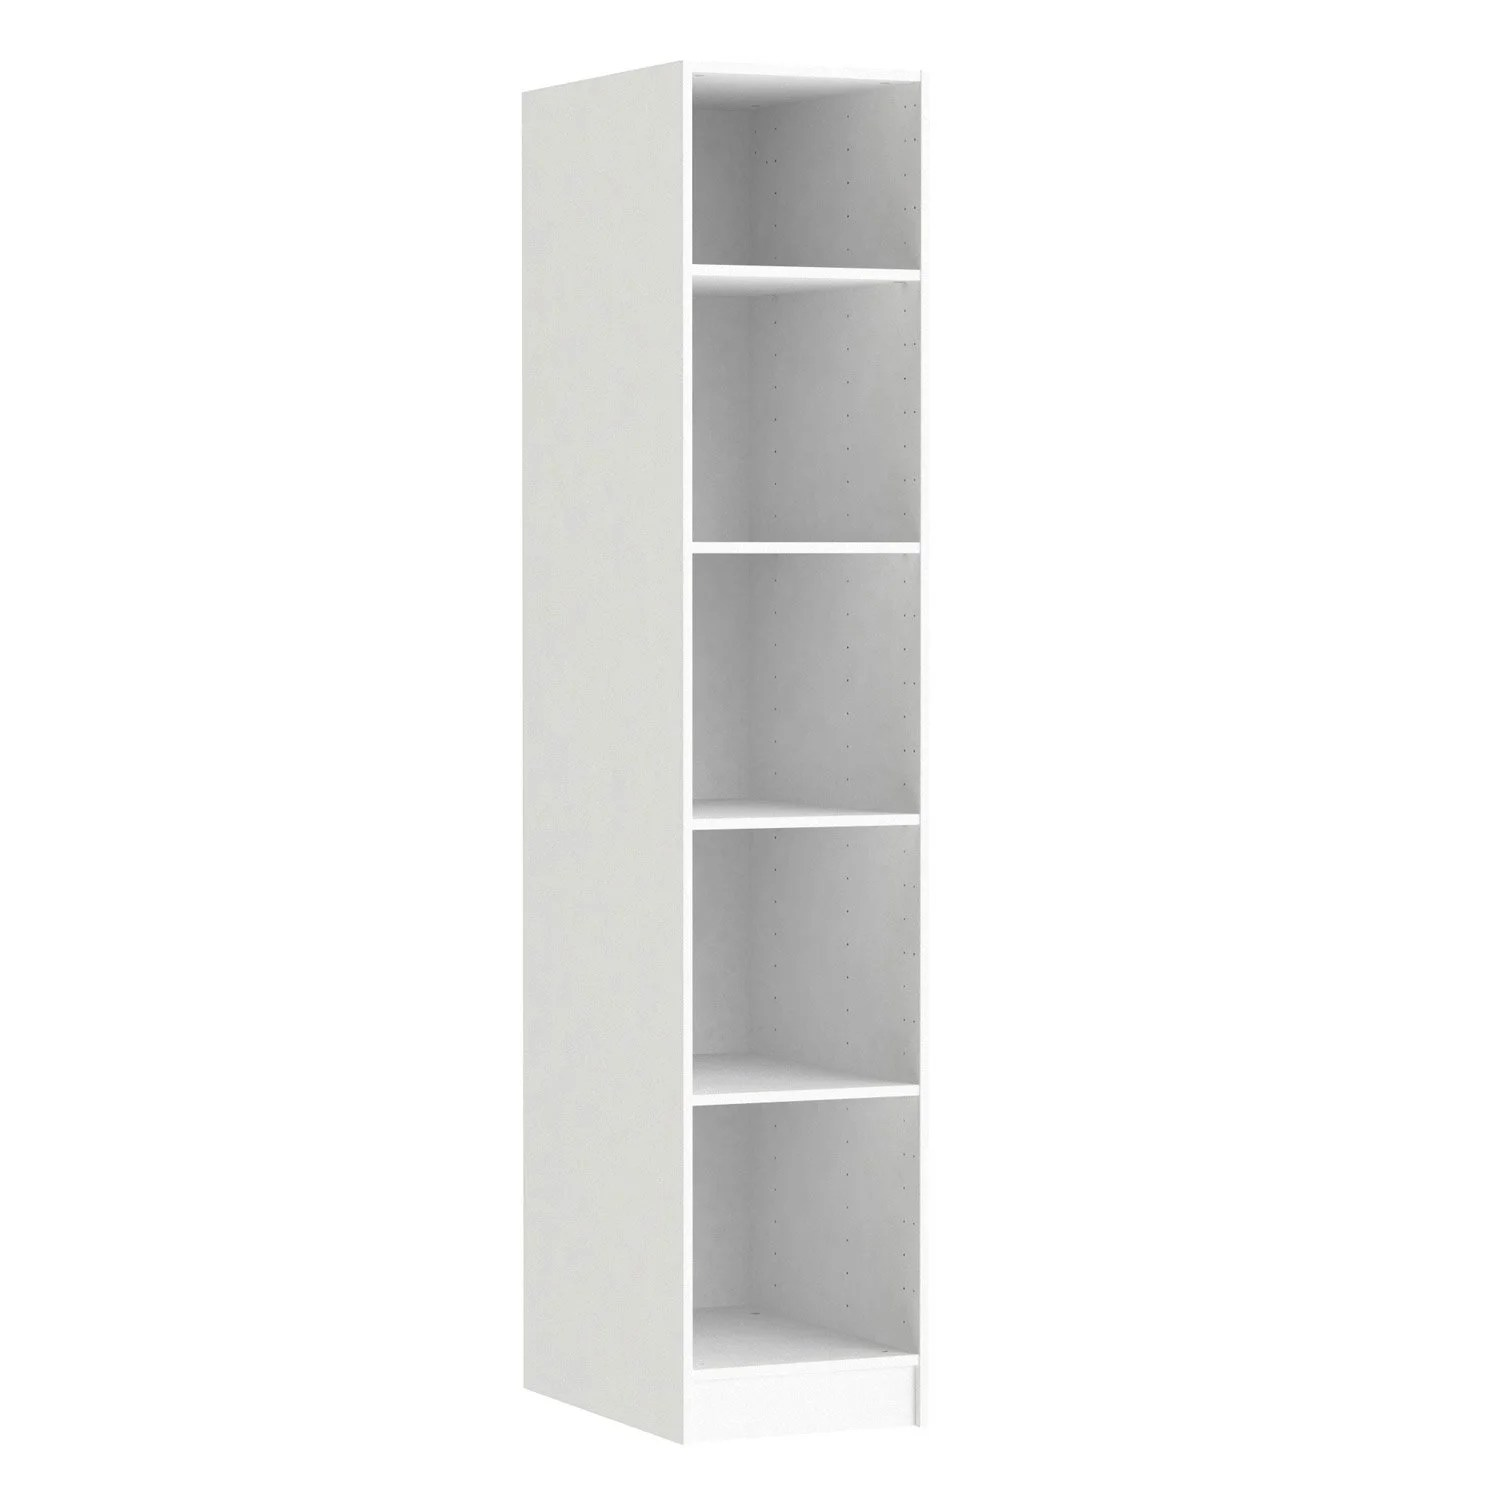 Caisson Spaceo Home Leroy Merlin Caisson Spaceo Home 200 X 40 X 60 Cm, Blanc | Leroy Merlin